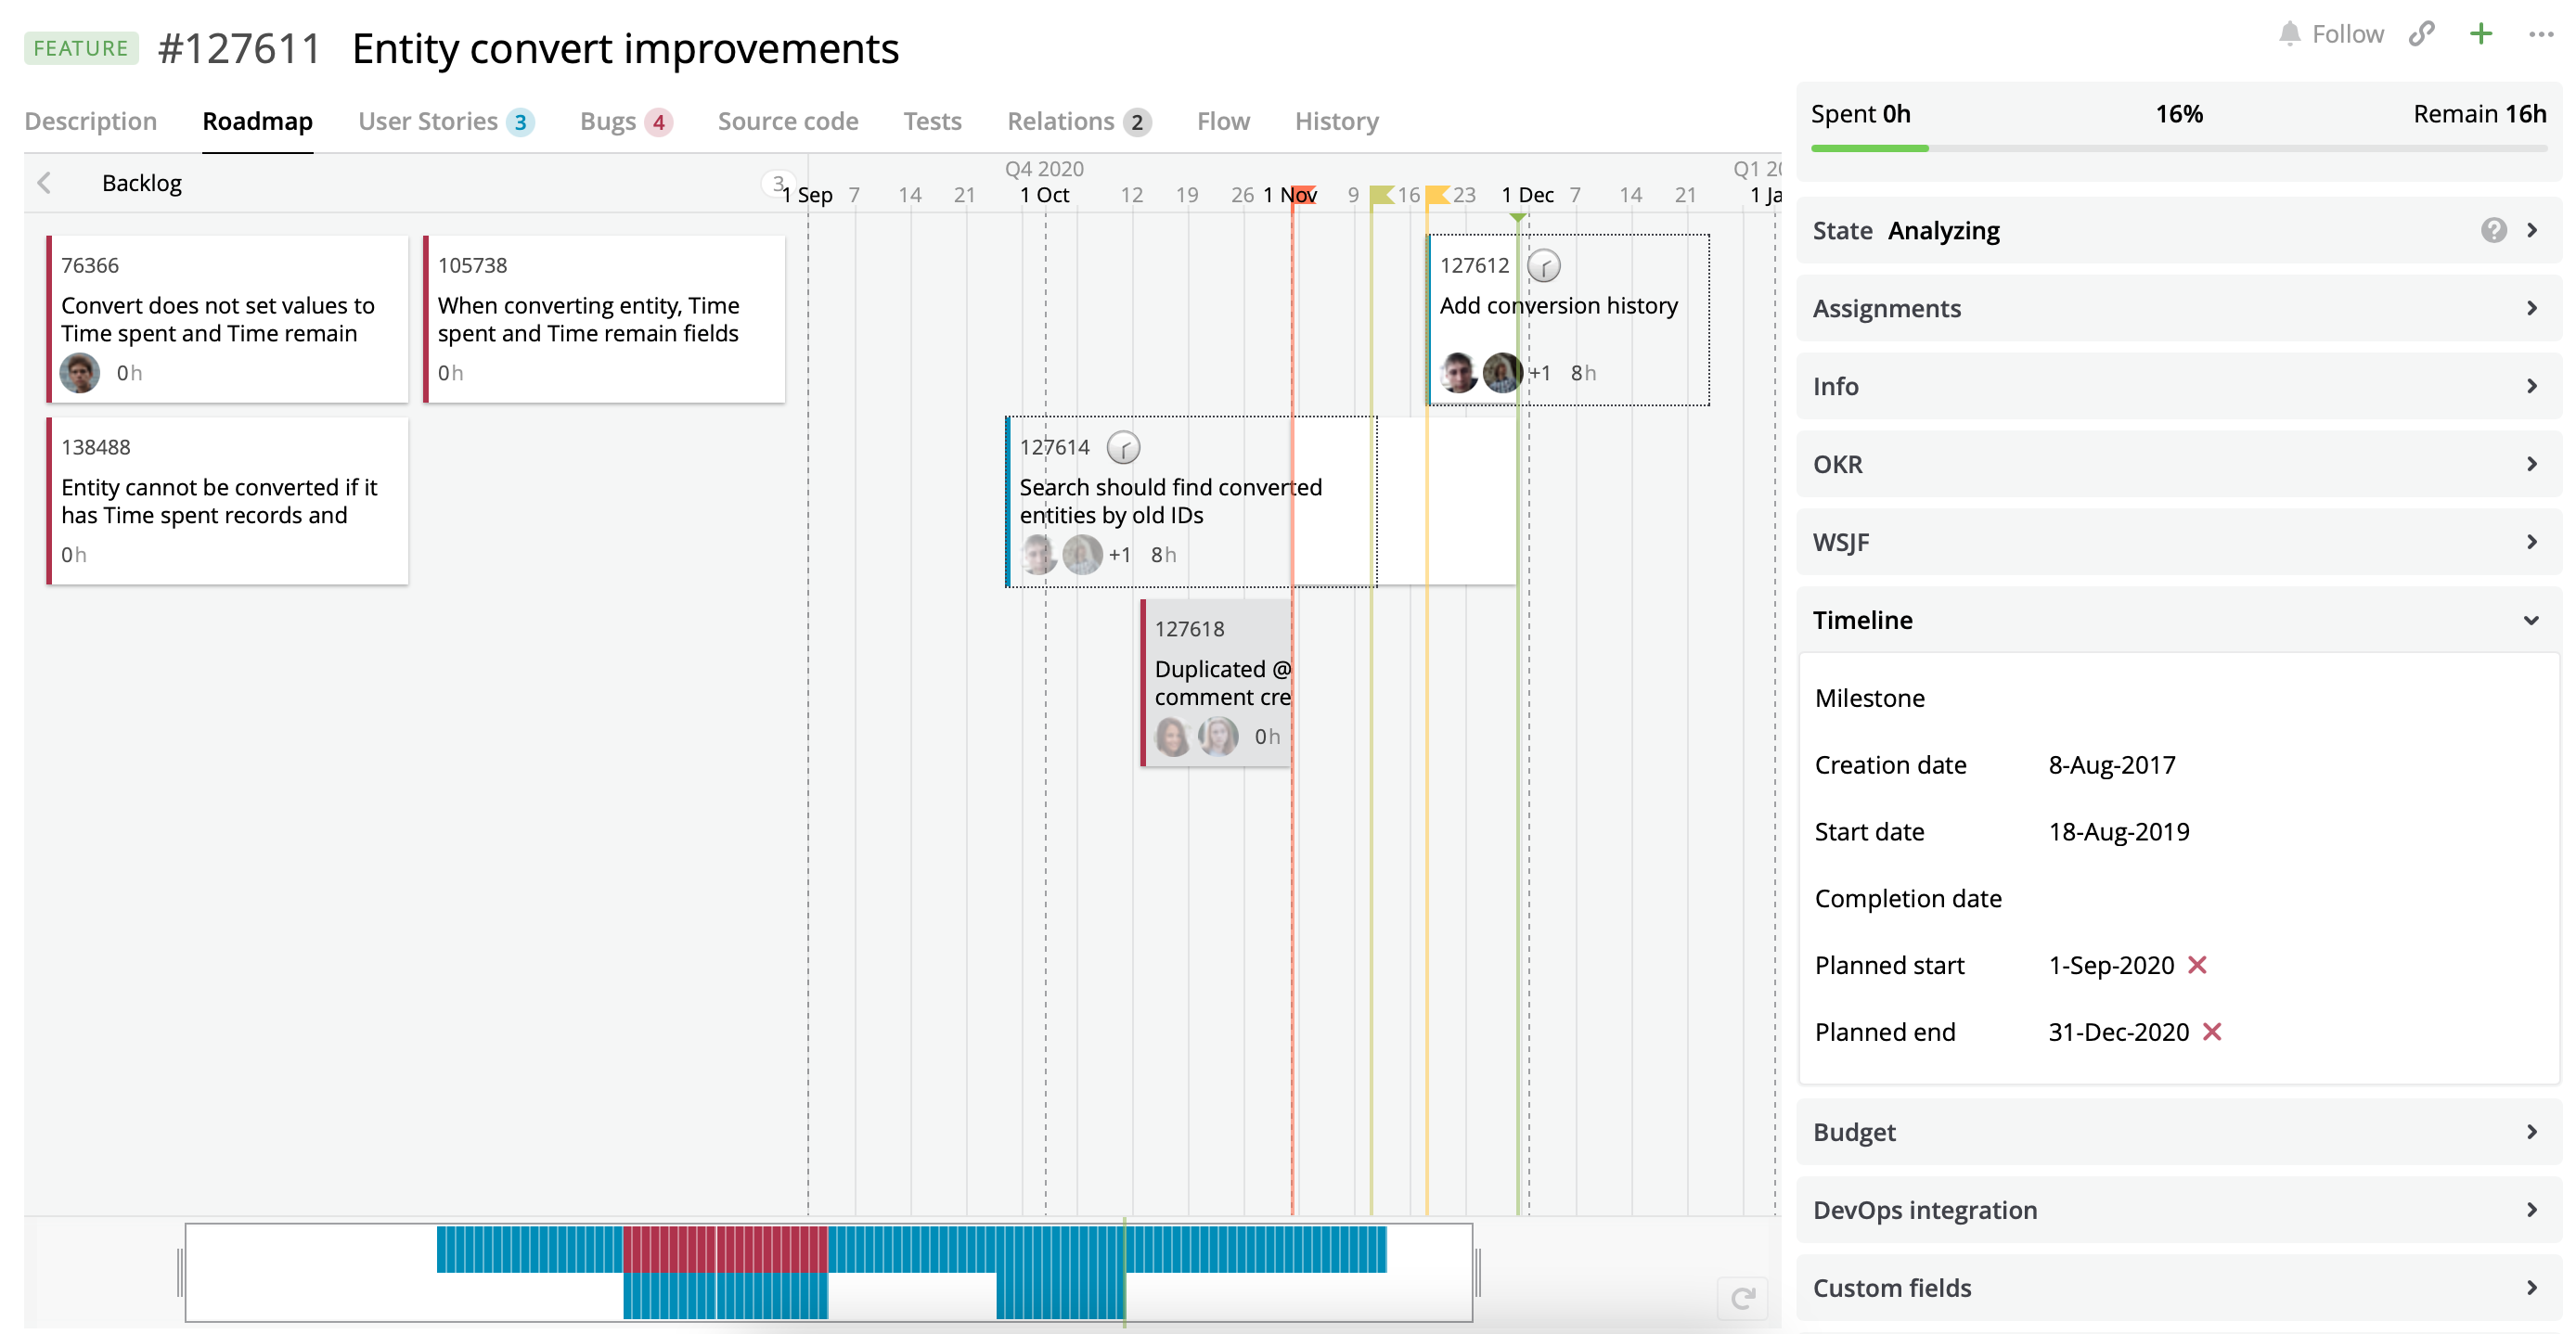 A Roadmap view with User Stories and Bugs assigned to the current Feature.